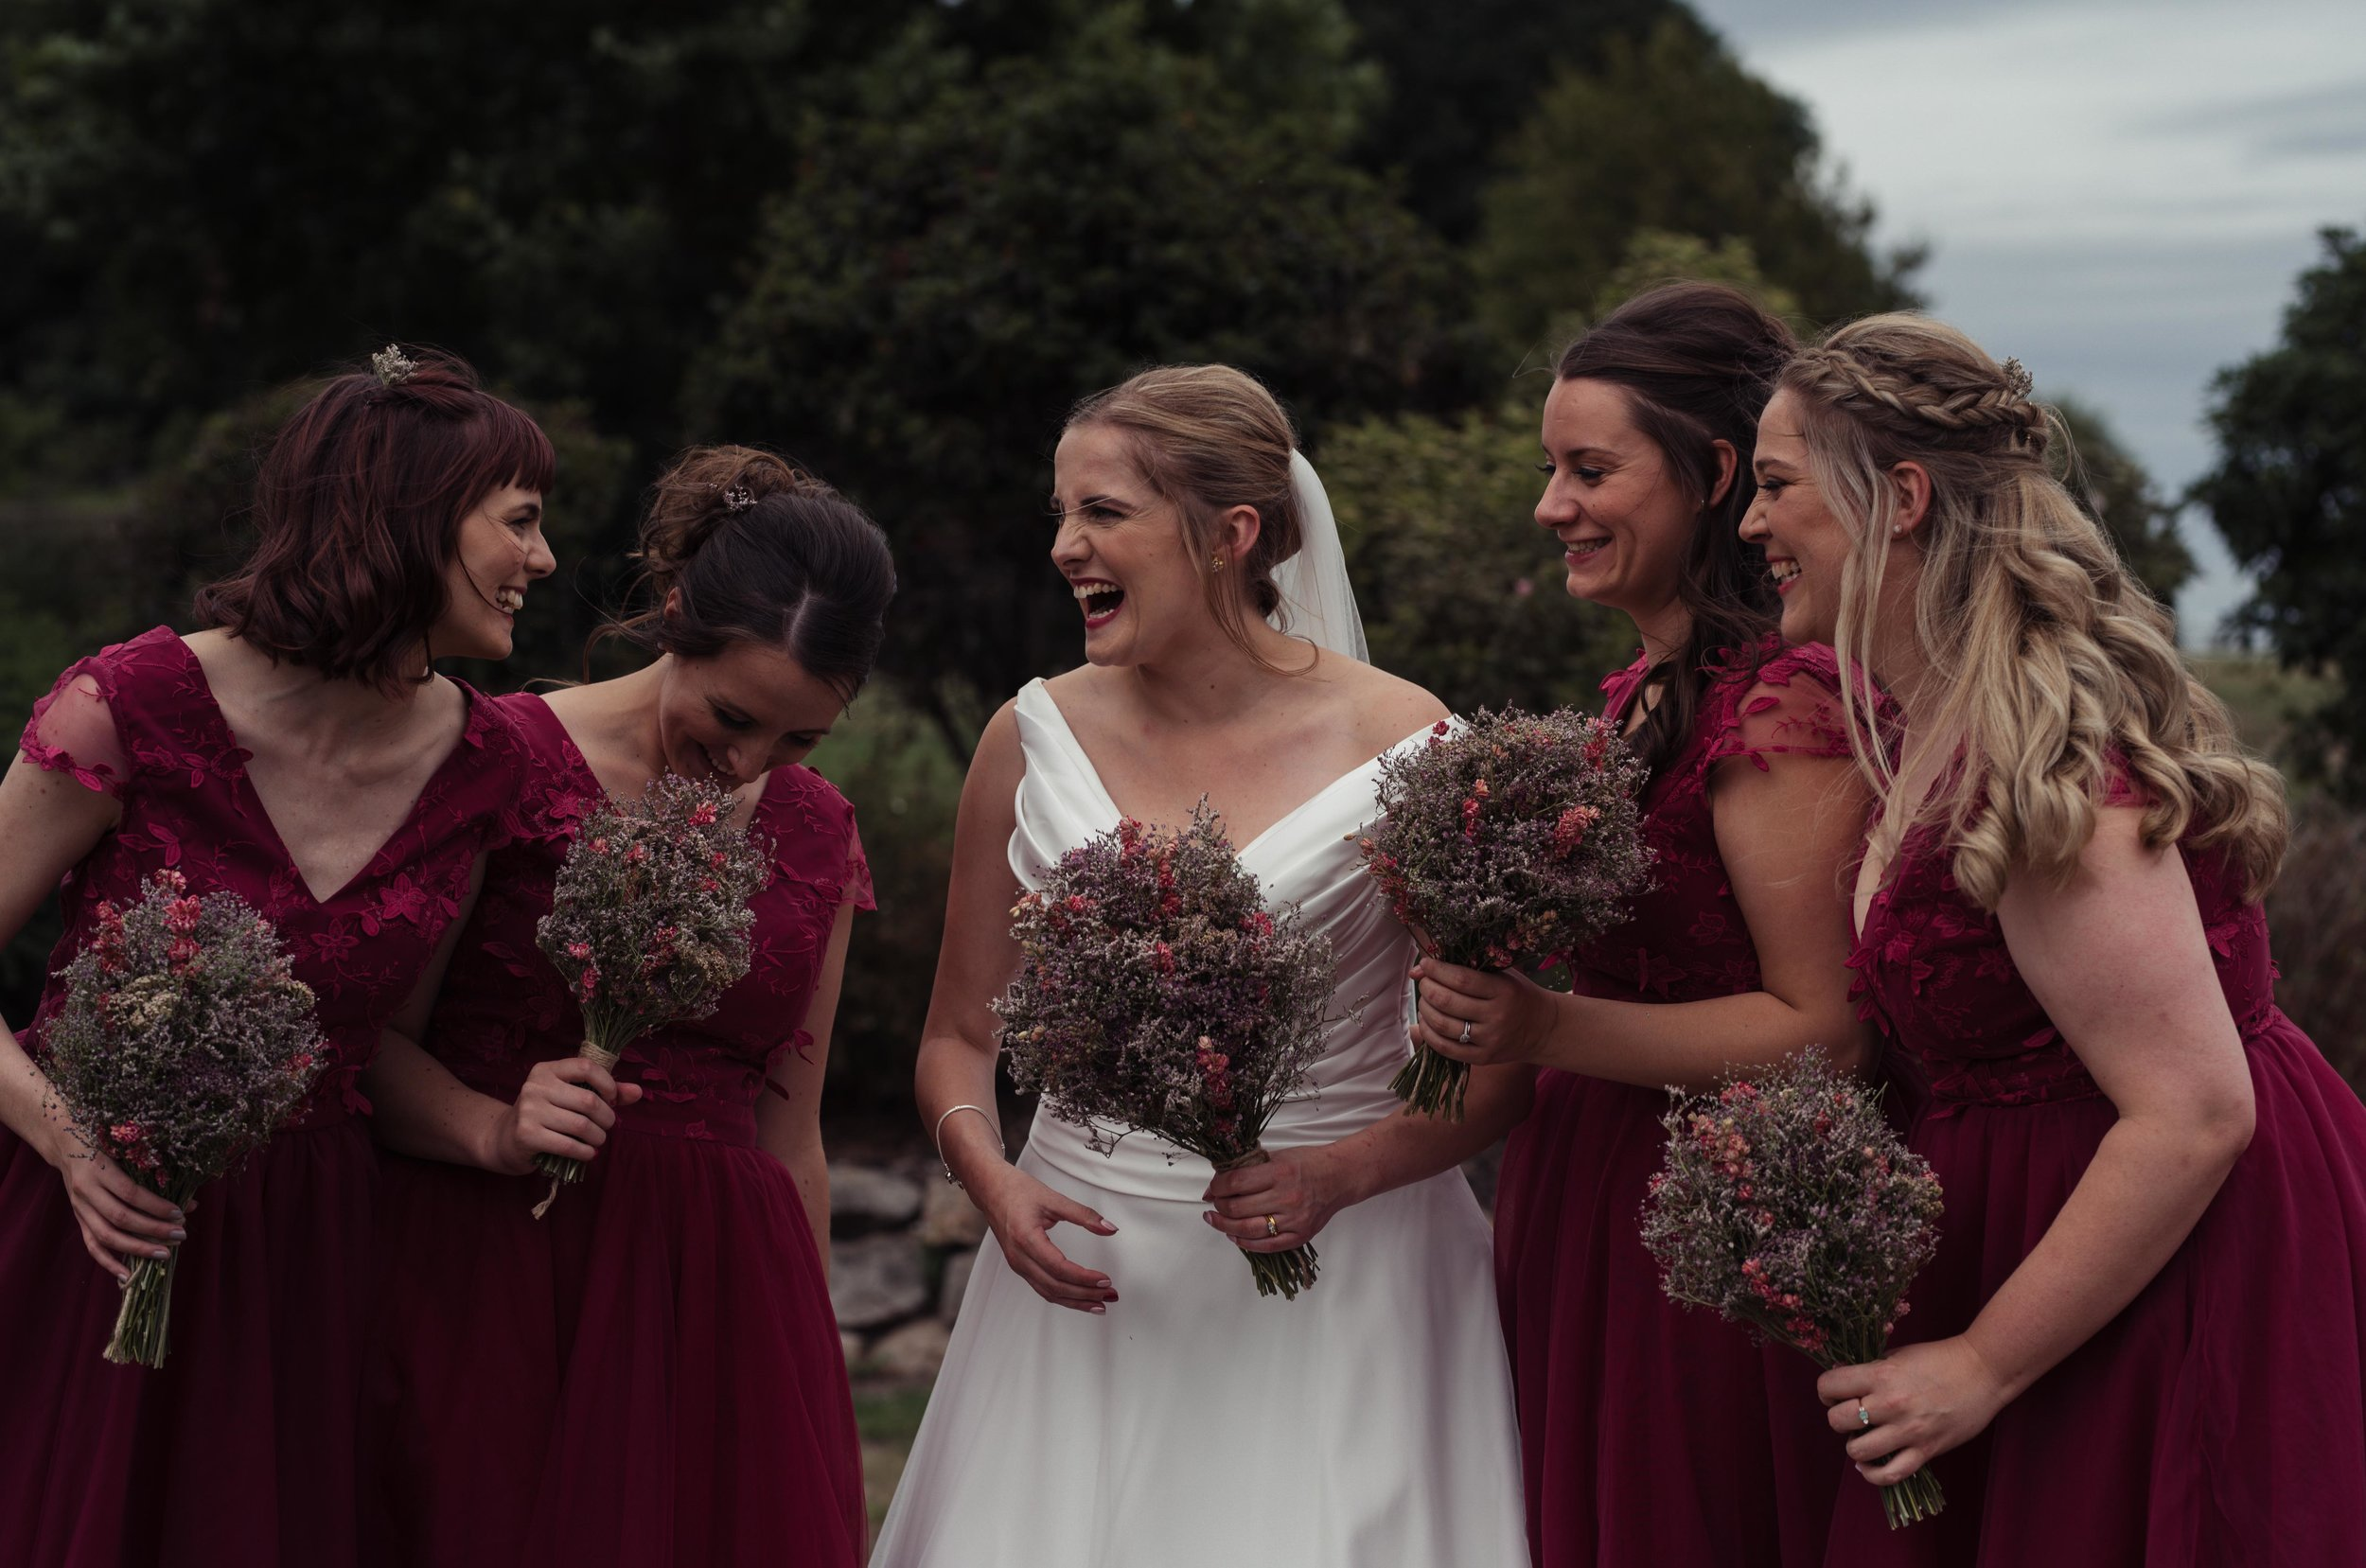 The bride and her bridesmaids having a laugh together during the photo shoot